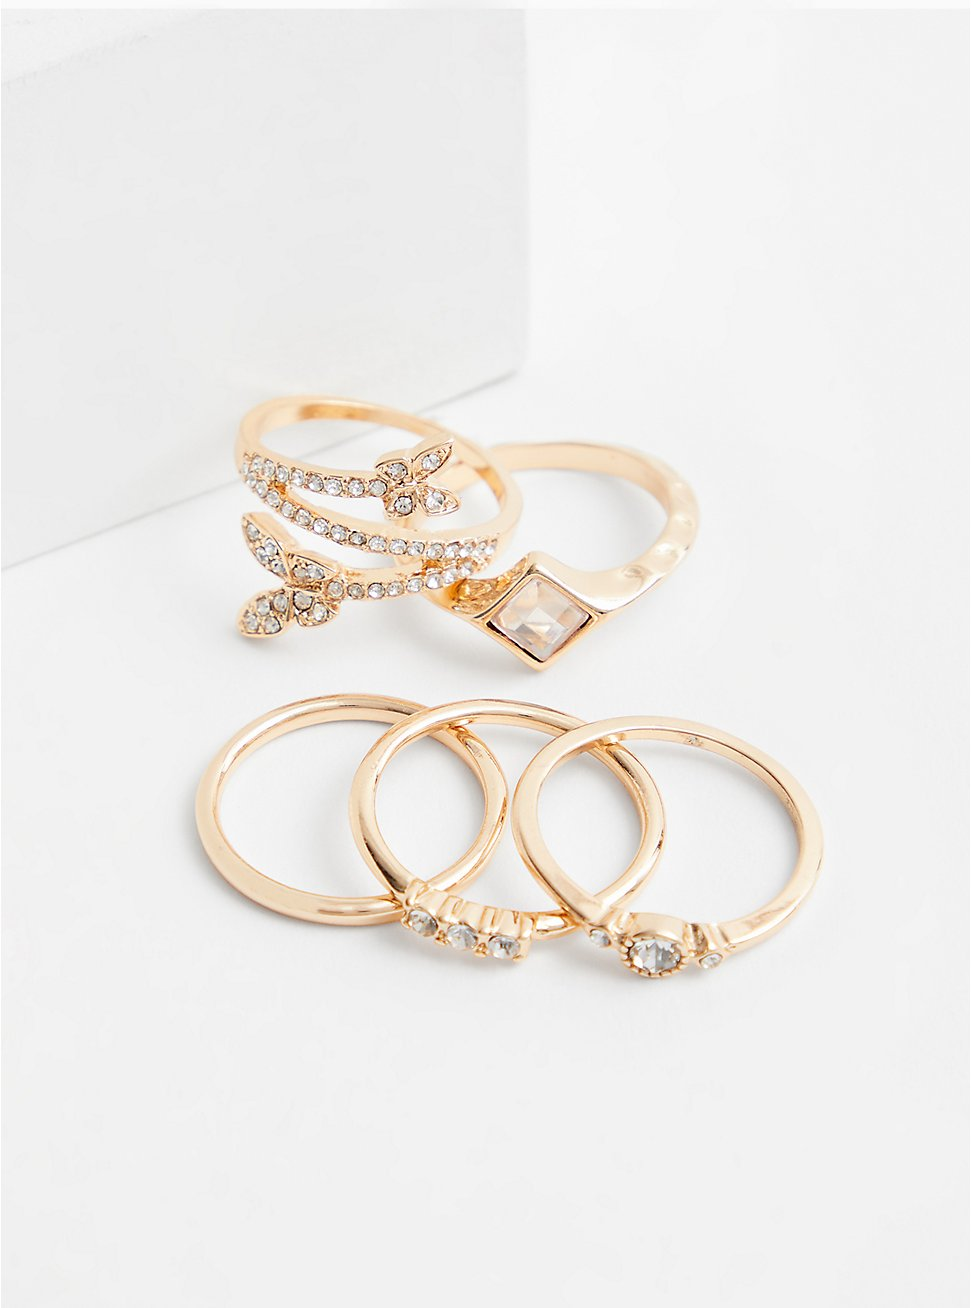 Plus Size Gold-Tone Butterfly Ring Set - Set of 5, GOLD, hi-res